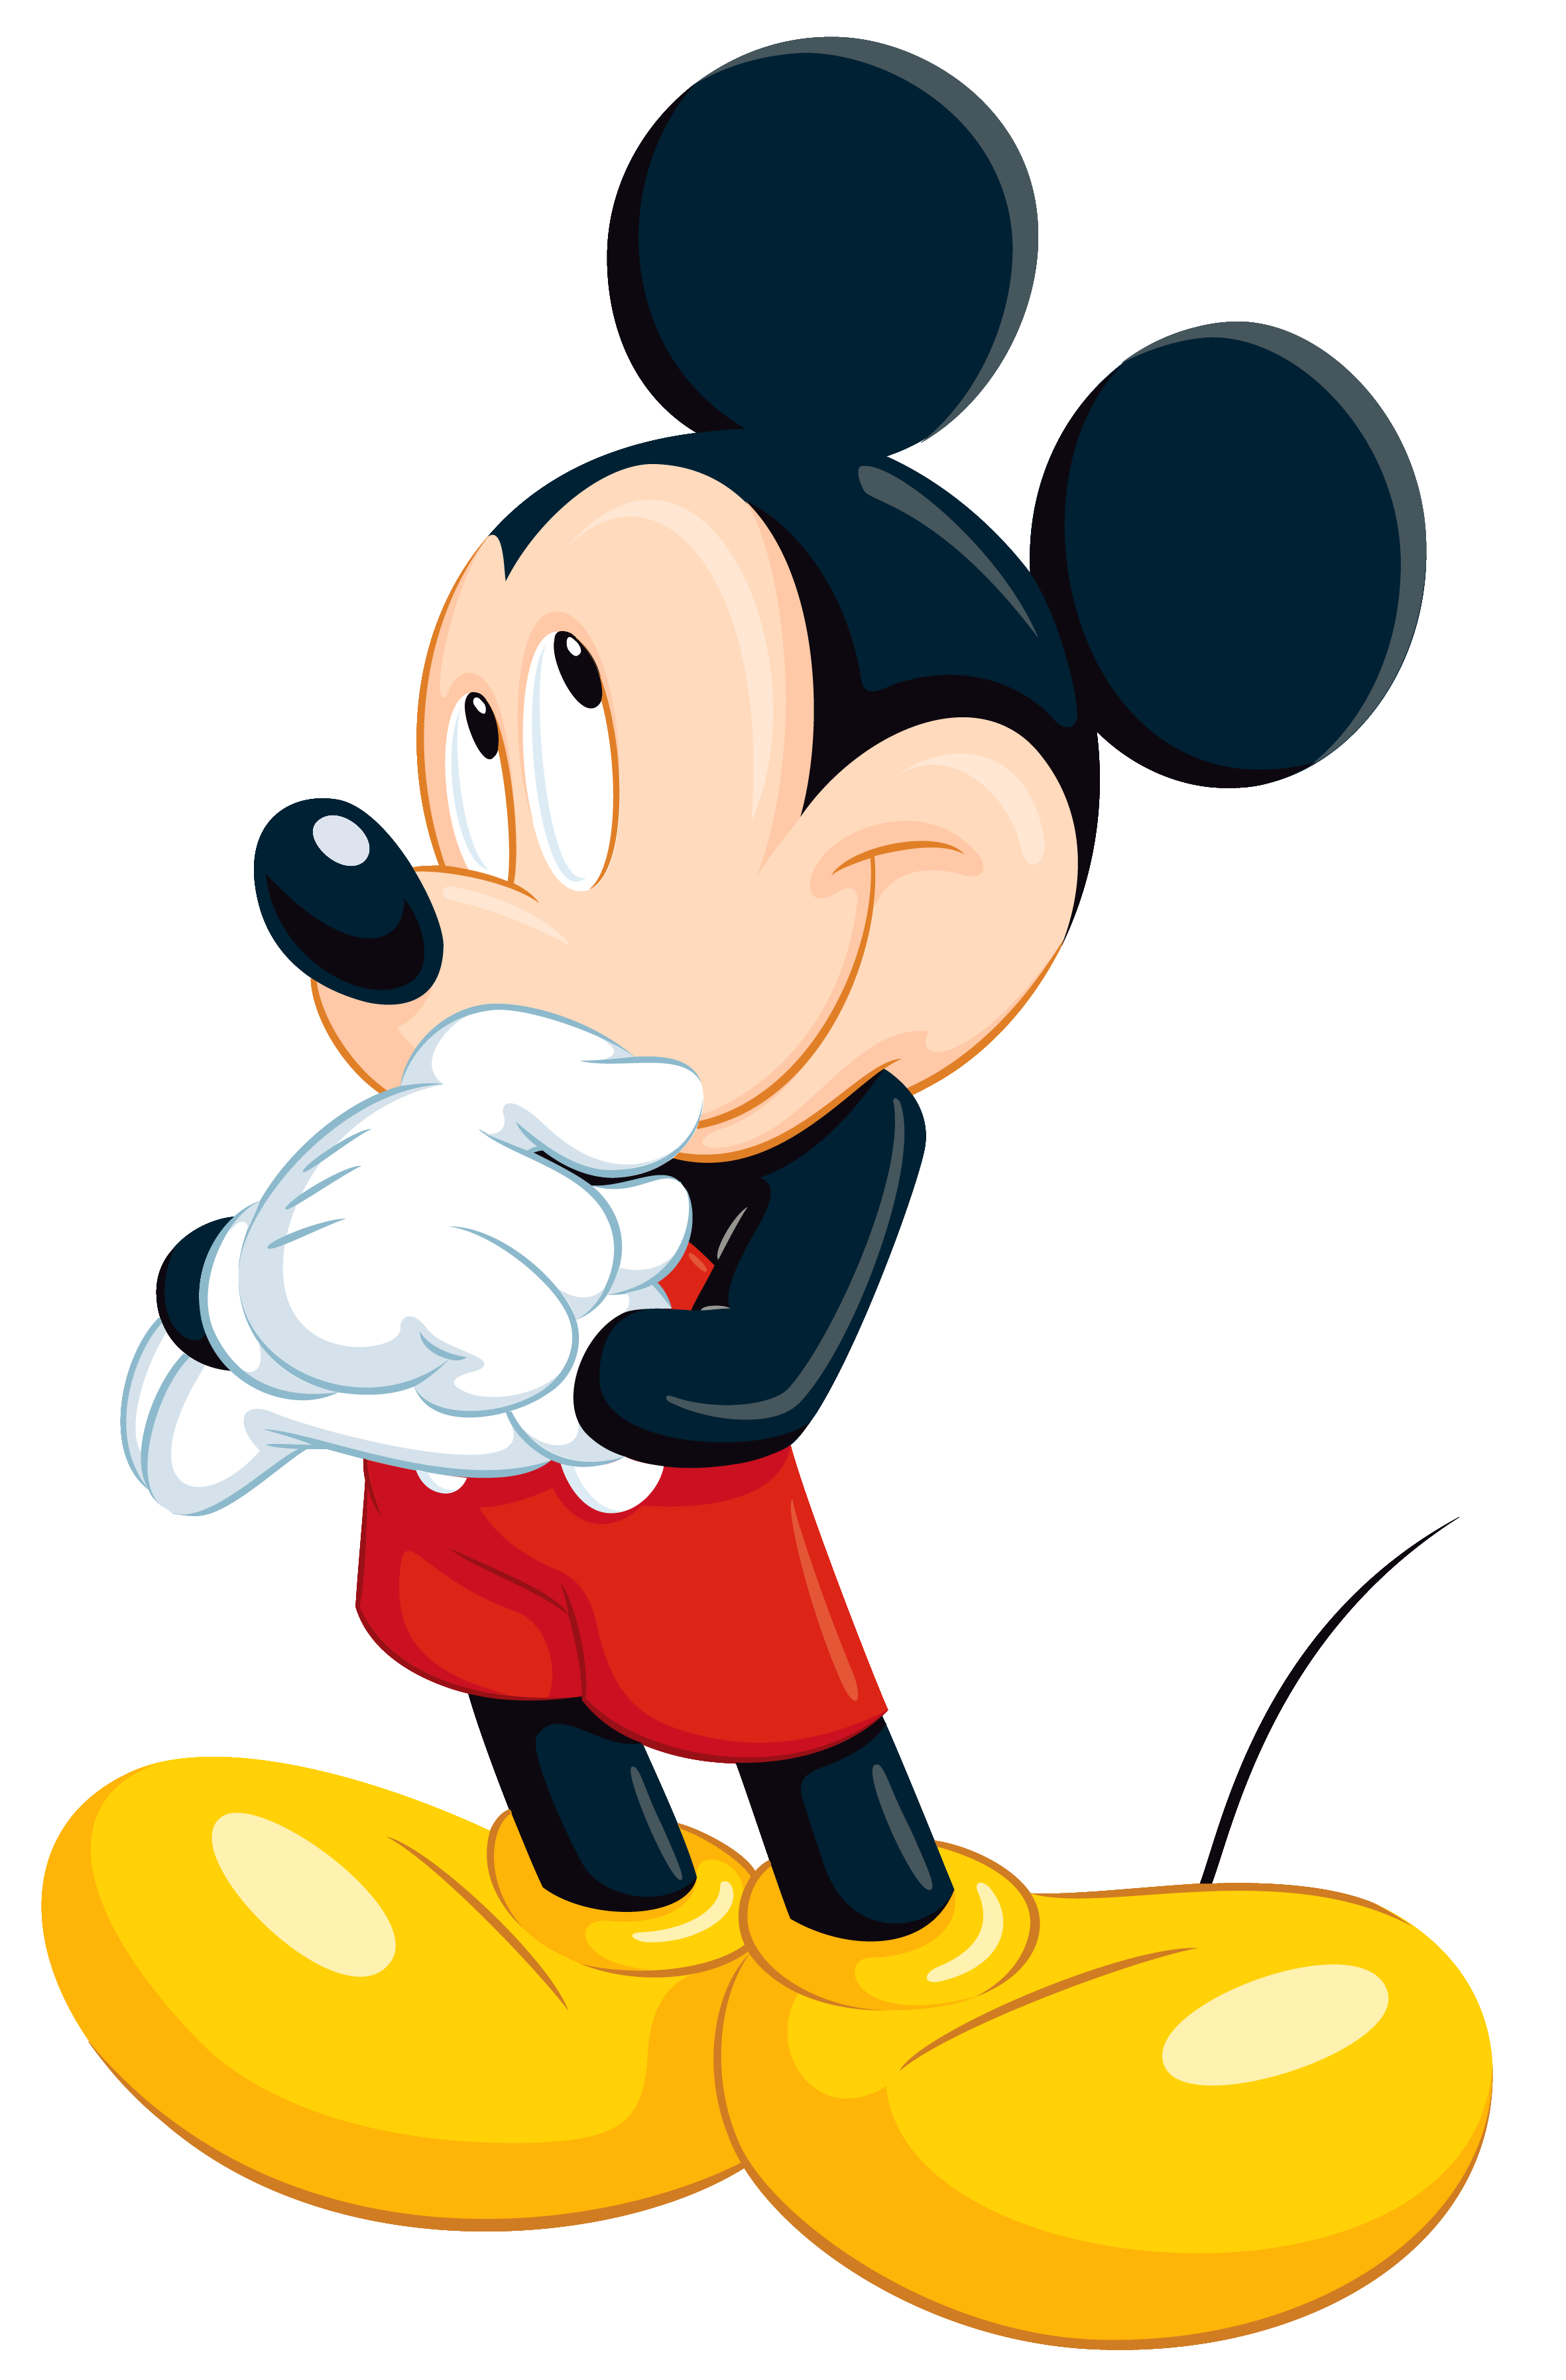 mickey mouse png clipart image mes s k pek pinterest mickey rh pinterest com clip art gallery not working clip art gallery free